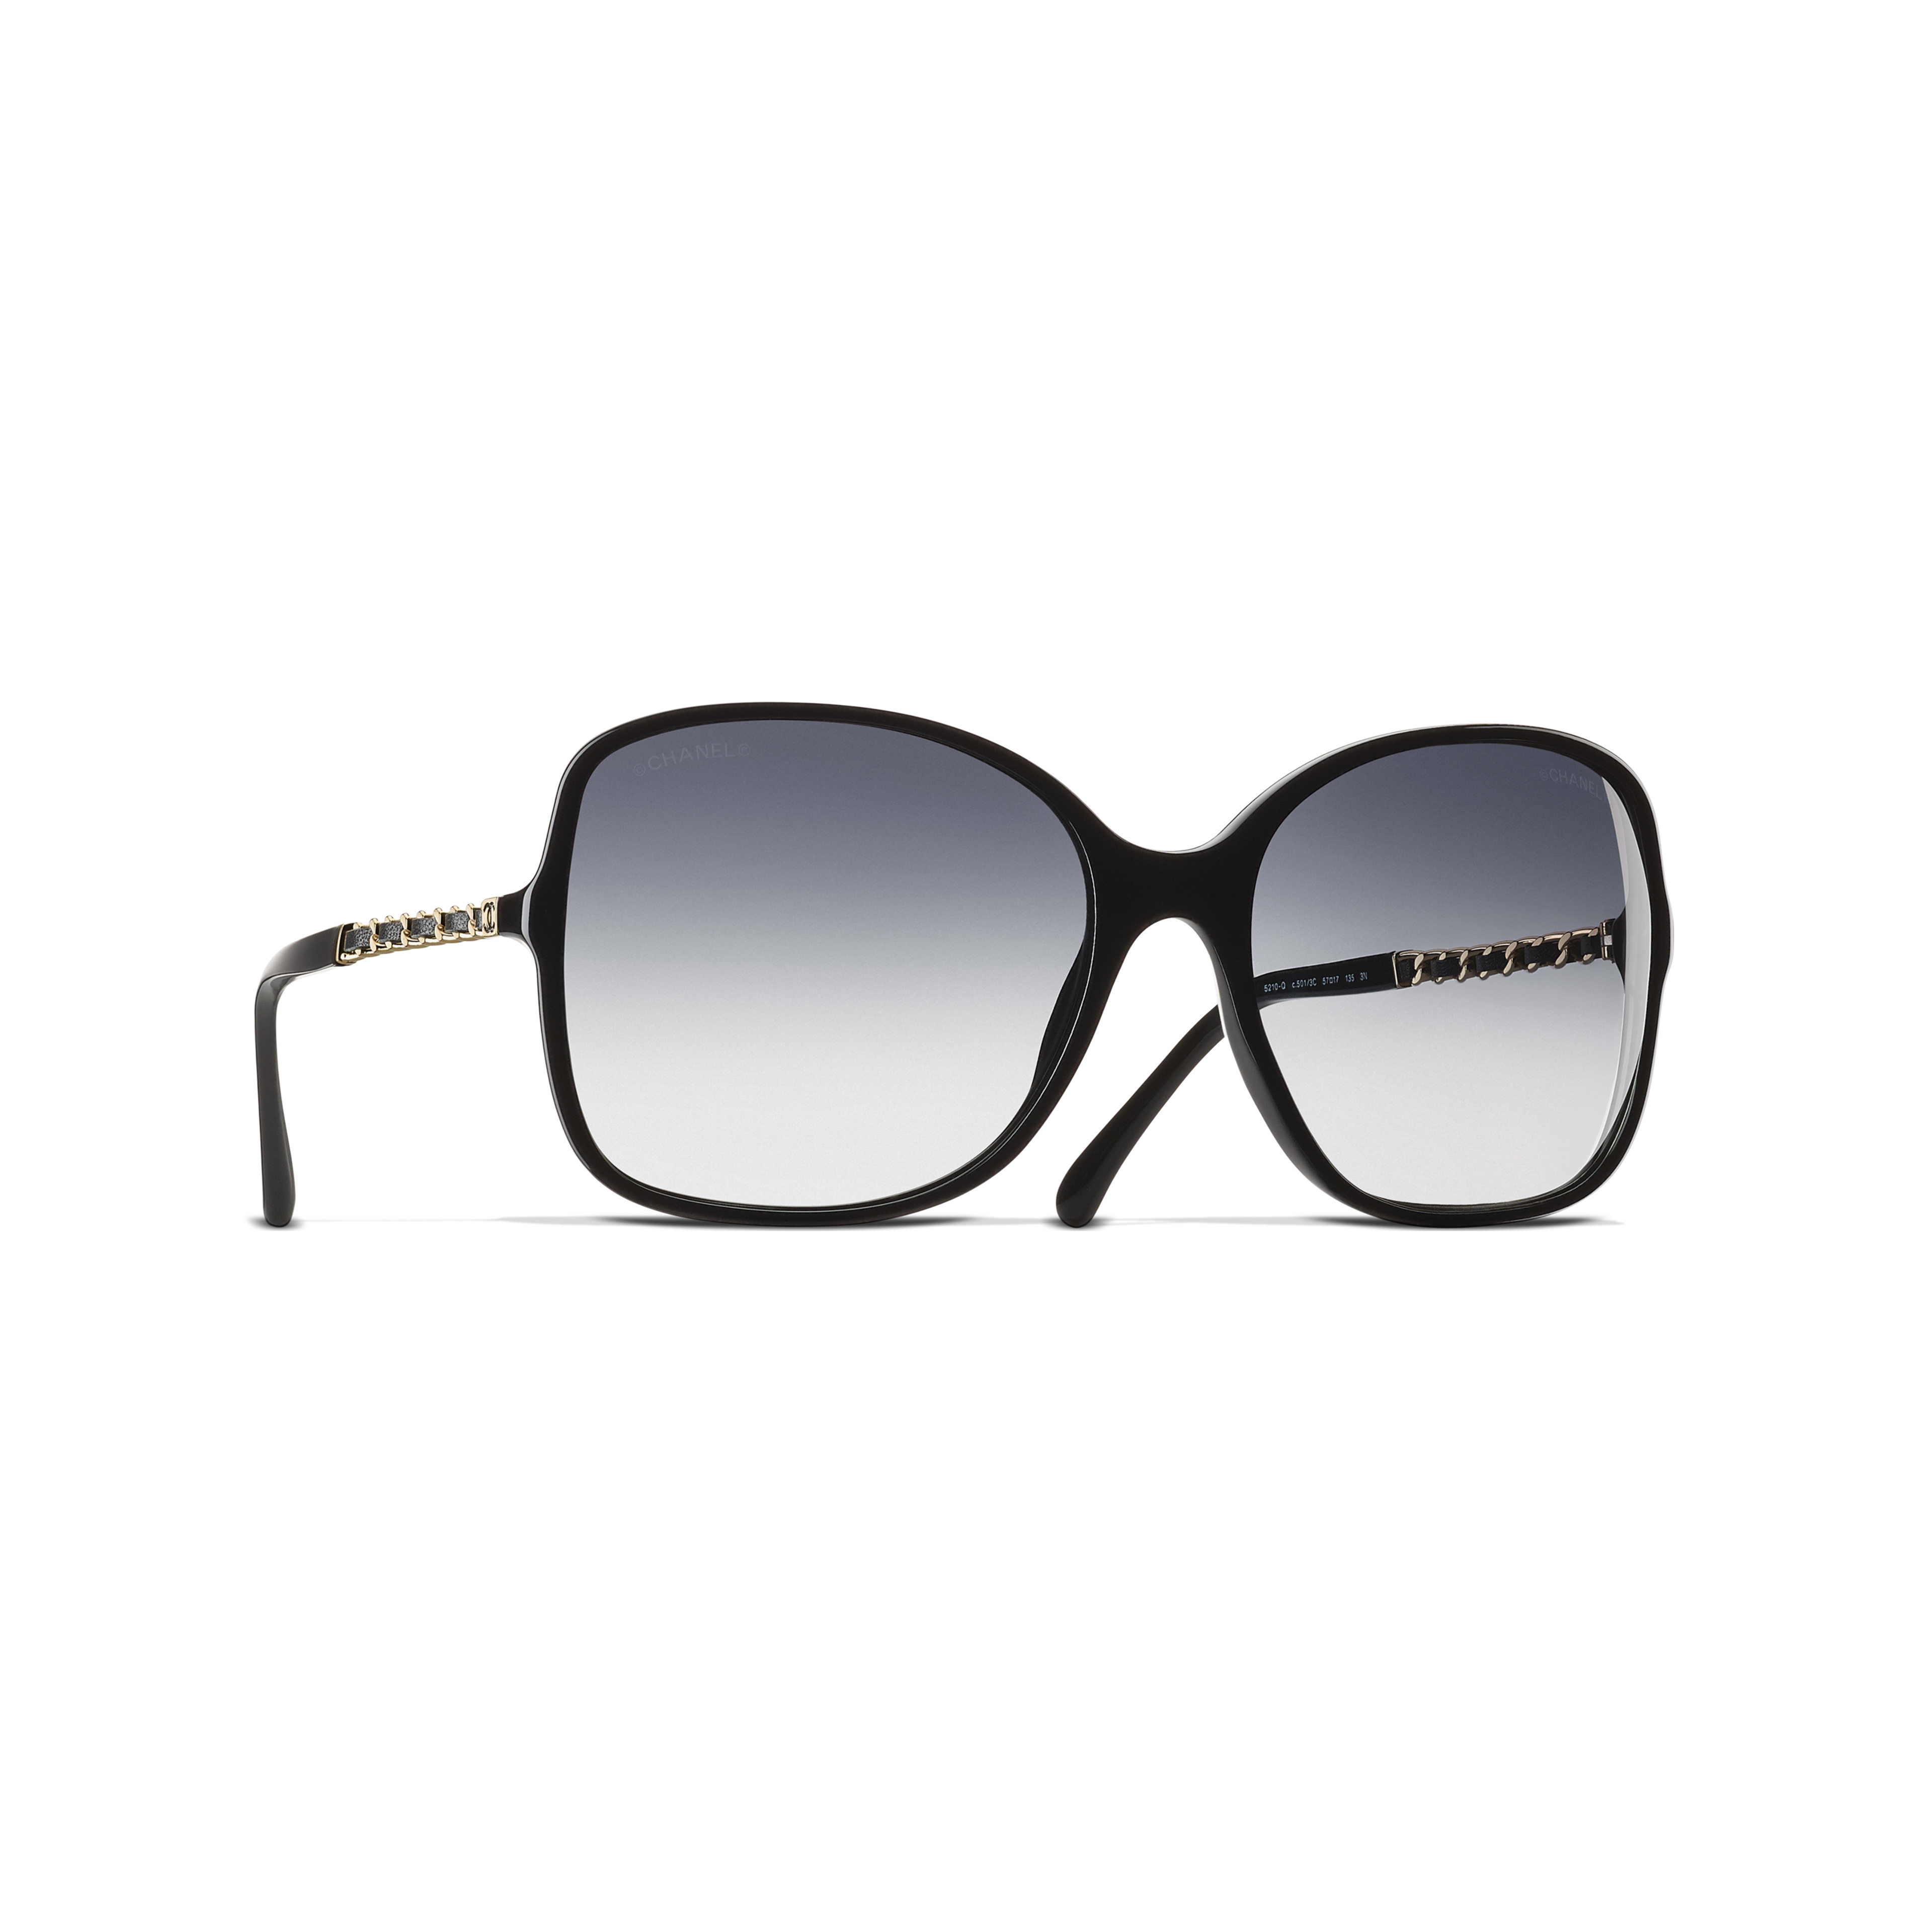 Square Sunglasses - Black - Acetate & Lambskin - Default view - see full sized version